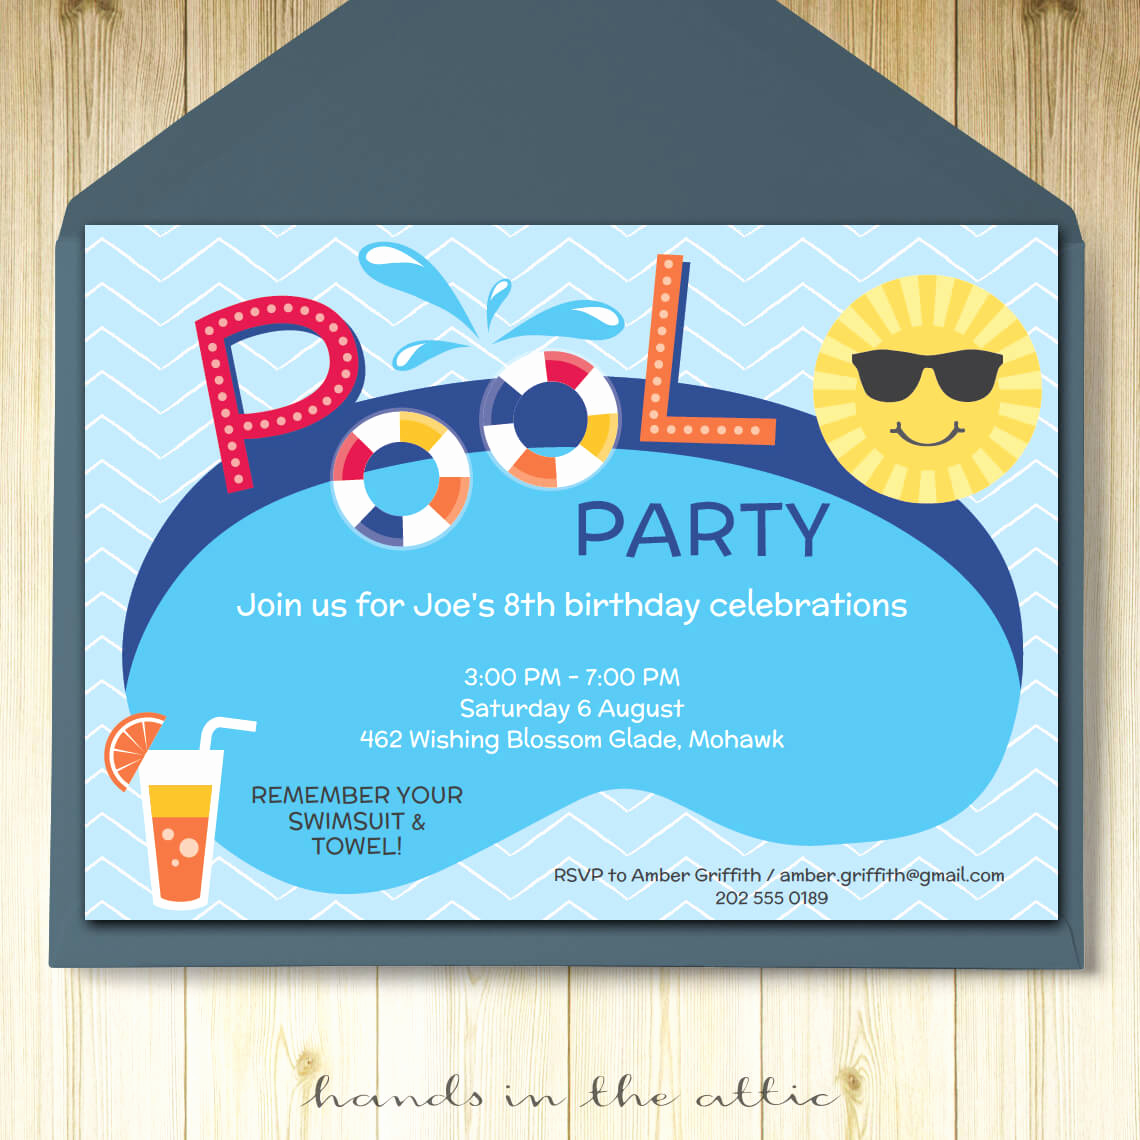 Bring Your Swimsuit Invitation New Pool Party Invitation Printable Template